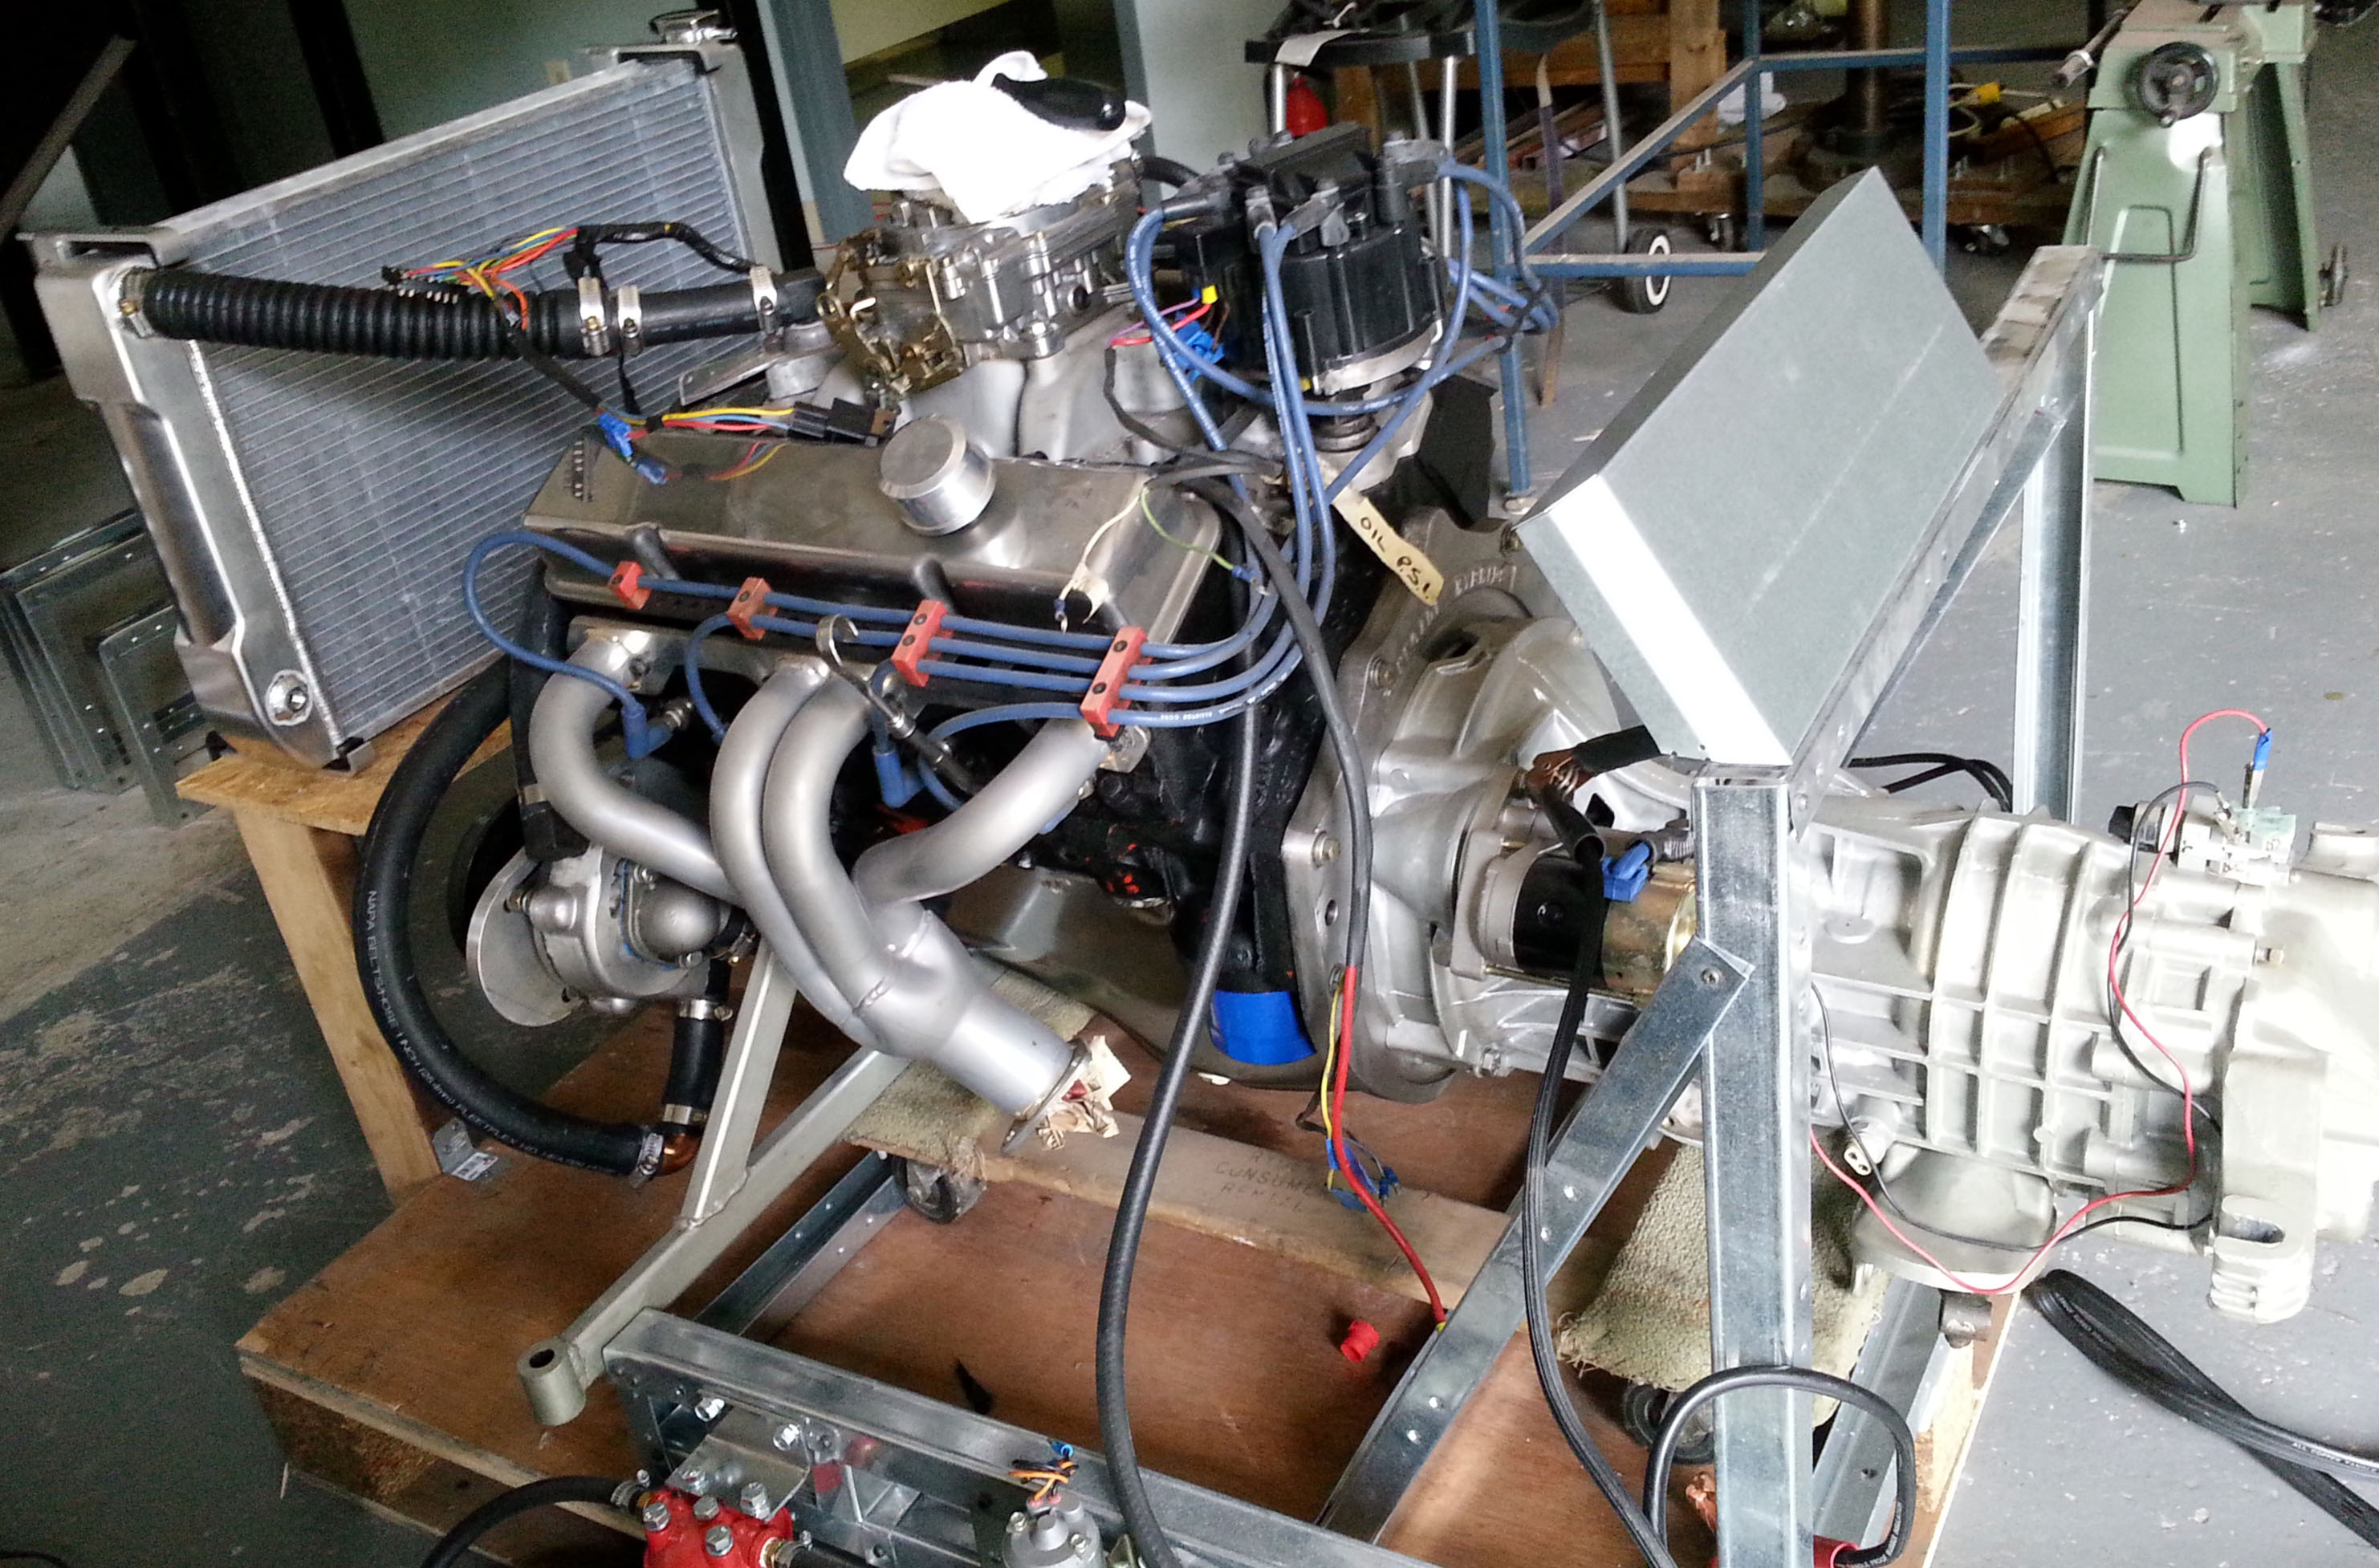 Click image for larger version  Name:Engine Test Stand small.jpg Views:4892 Size:831.2 KB ID:76255